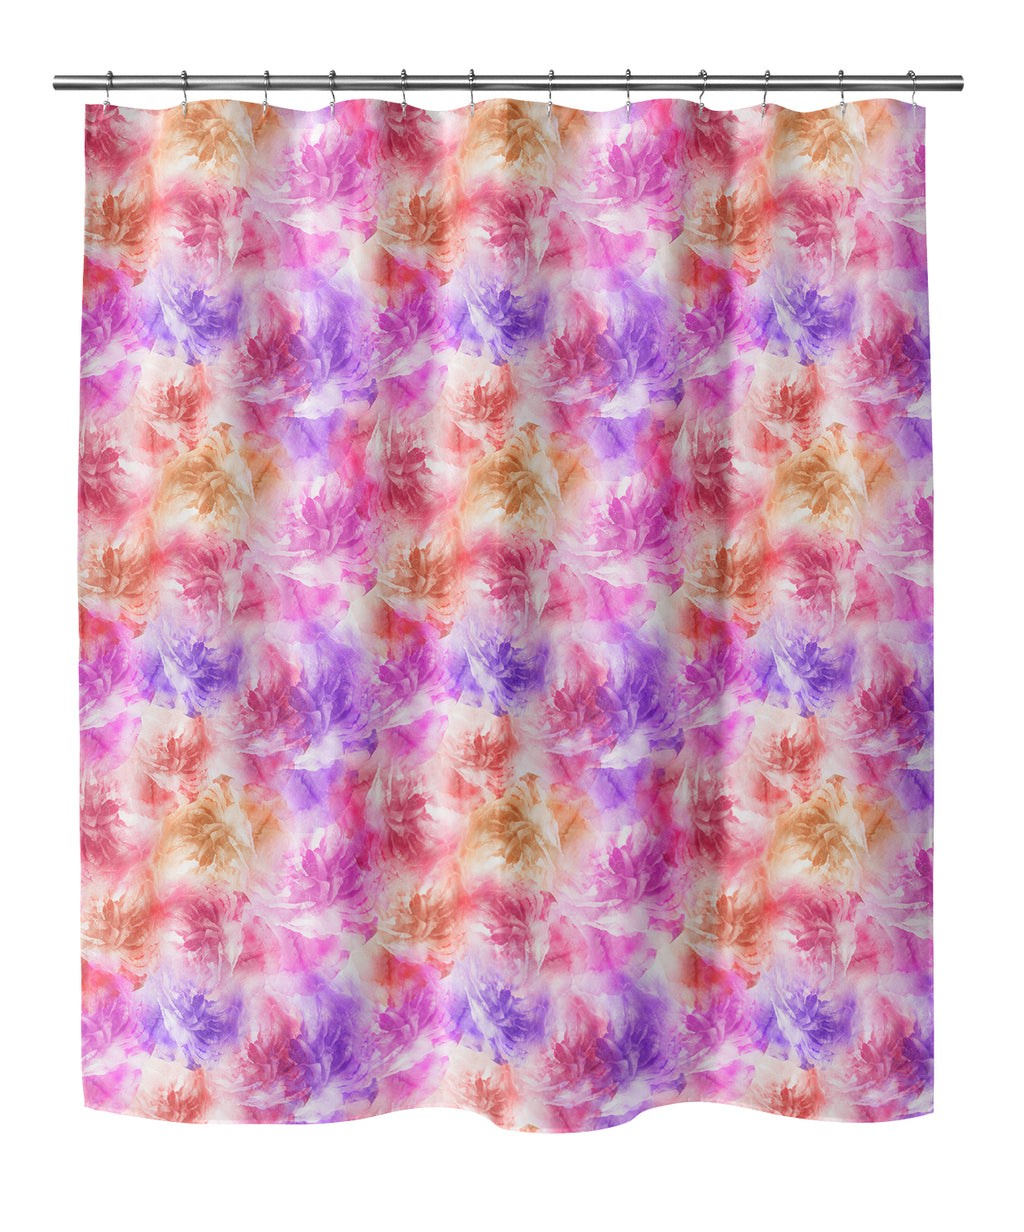 FLORAL BLOOMS PINK AND PURPLE Shower Curtain By Jackii Greener